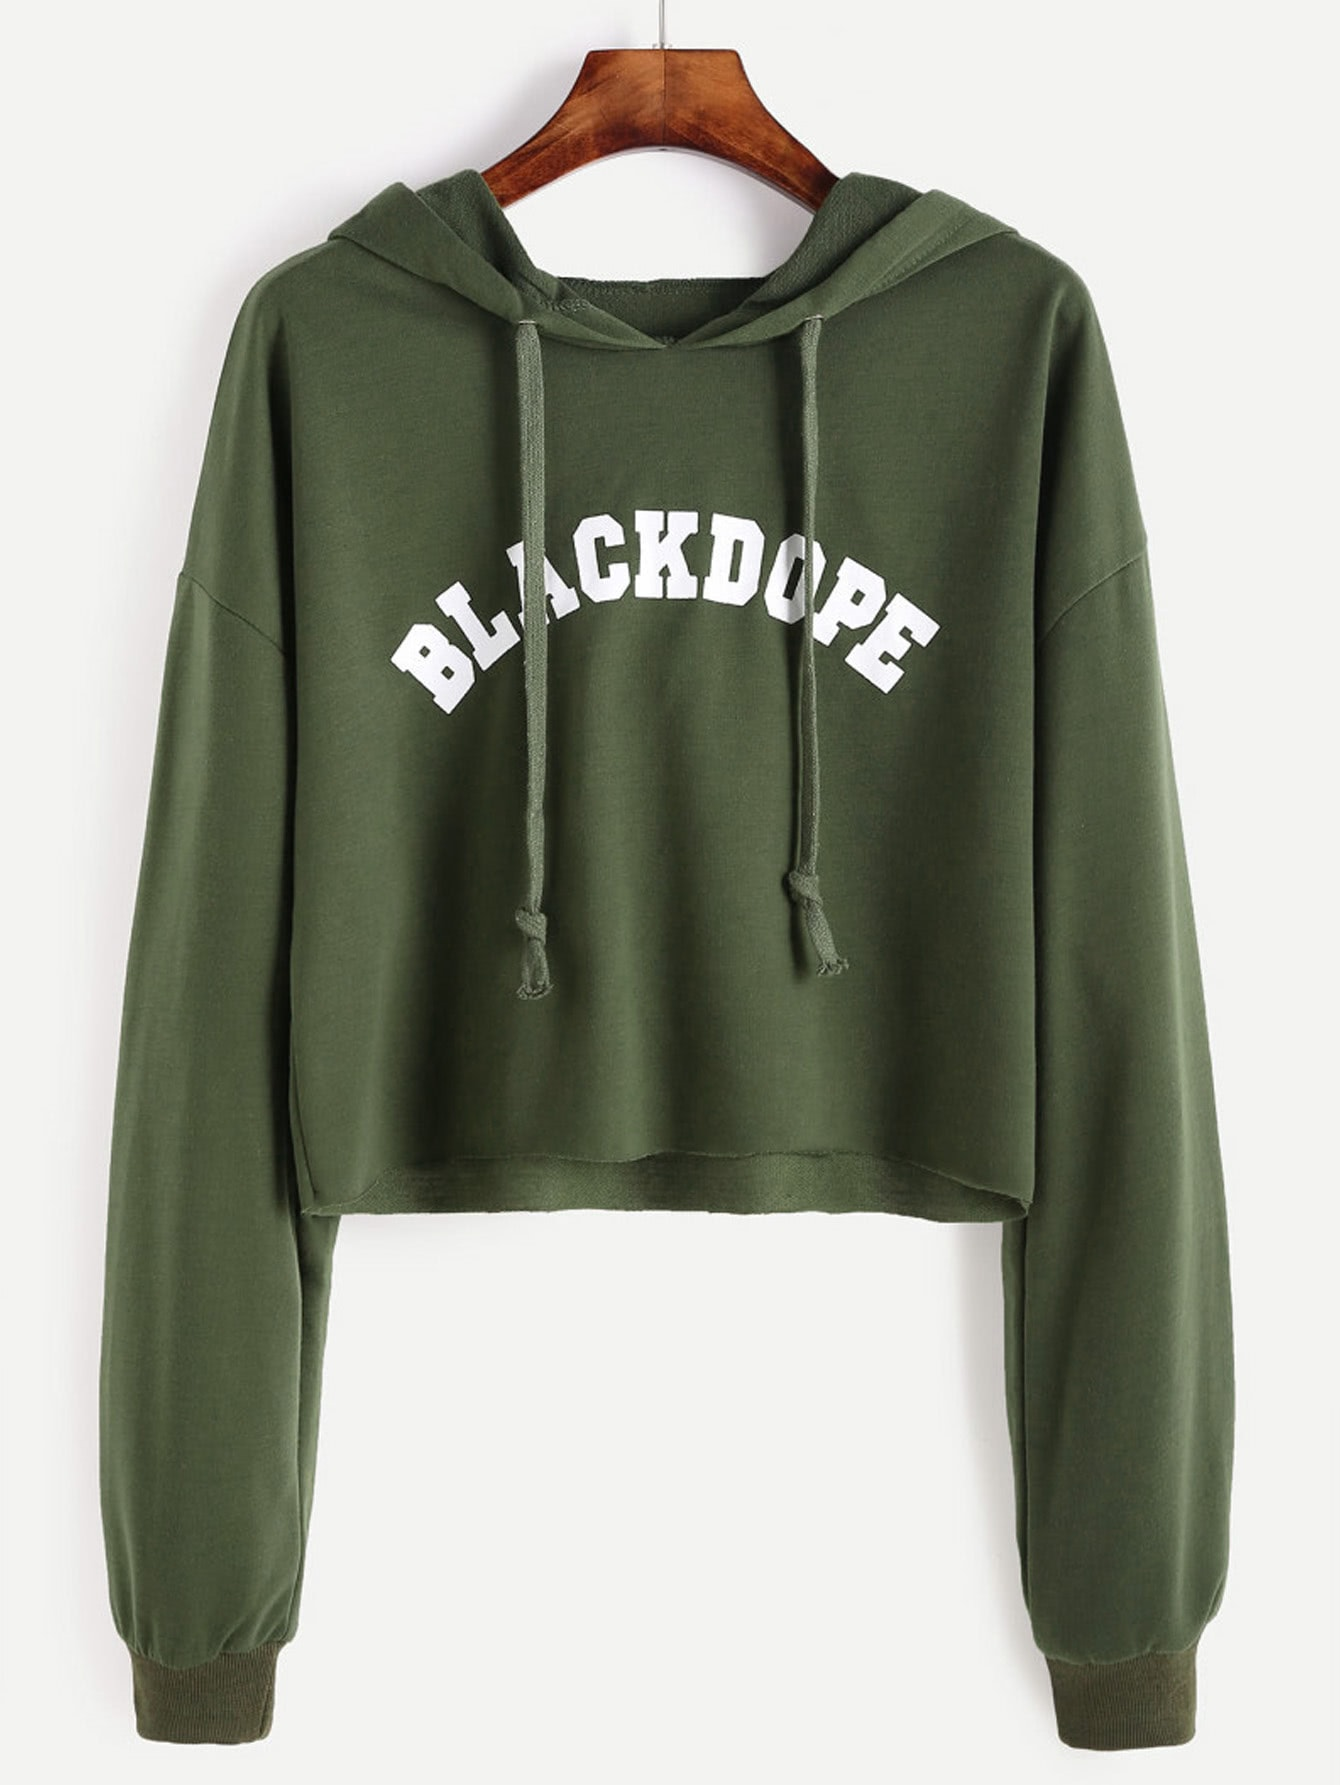 Drop Shoulder Letter Print Raw Hem Crop Hoodie блок питания пк chieftec aps 650sb 650w aps 650sb